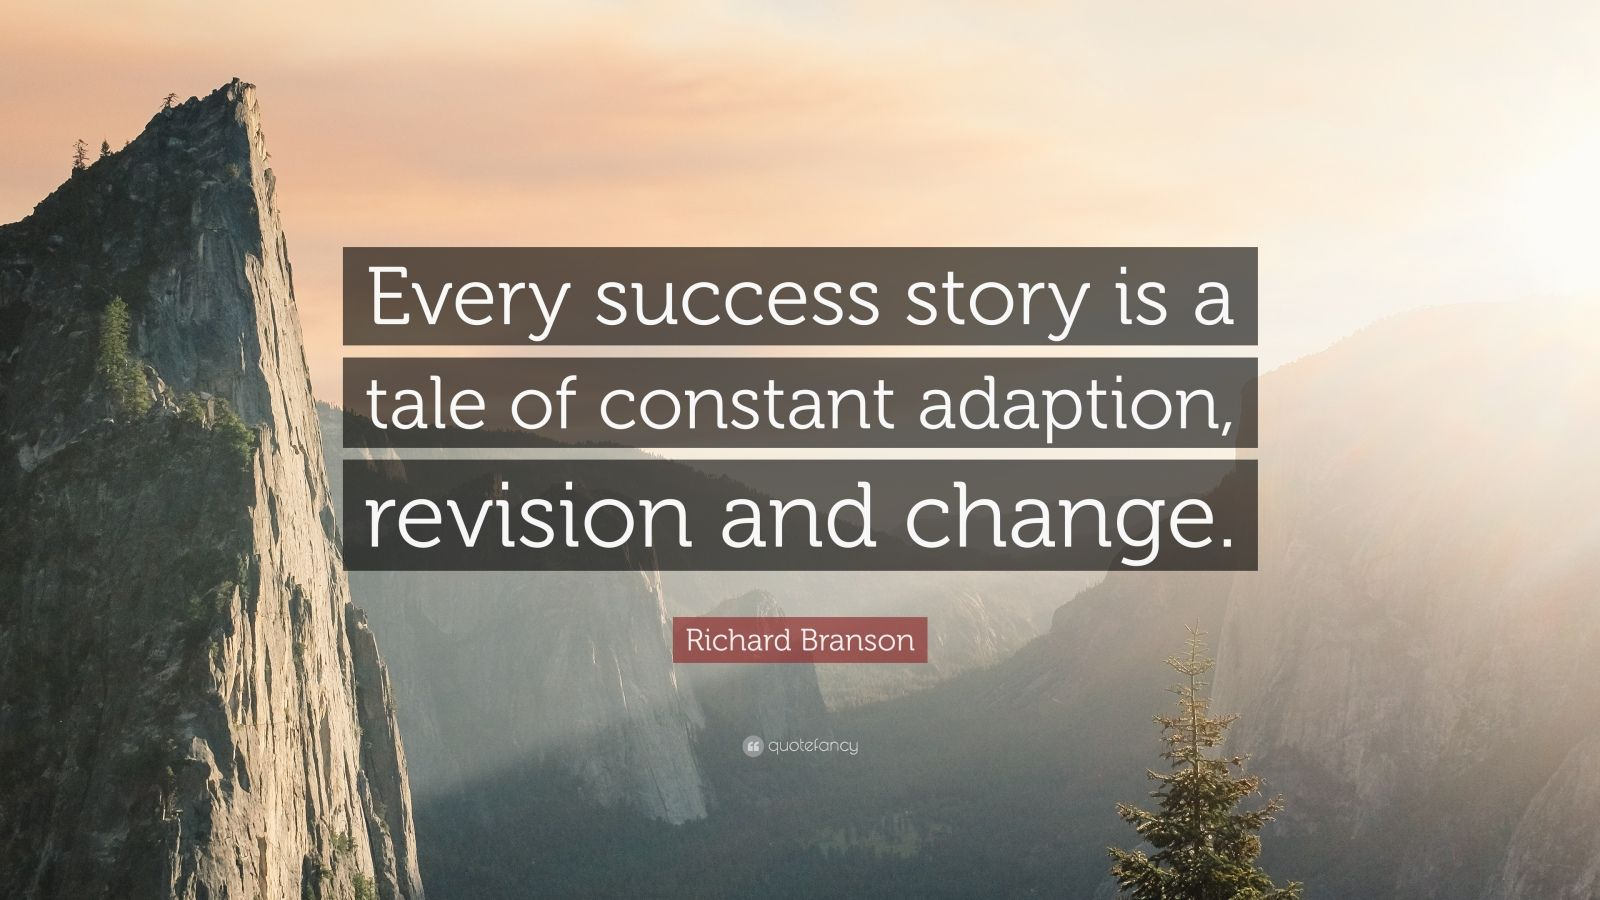 """Richard Branson Quote: """"Every success story is a tale of constant adaption, revision and change."""""""